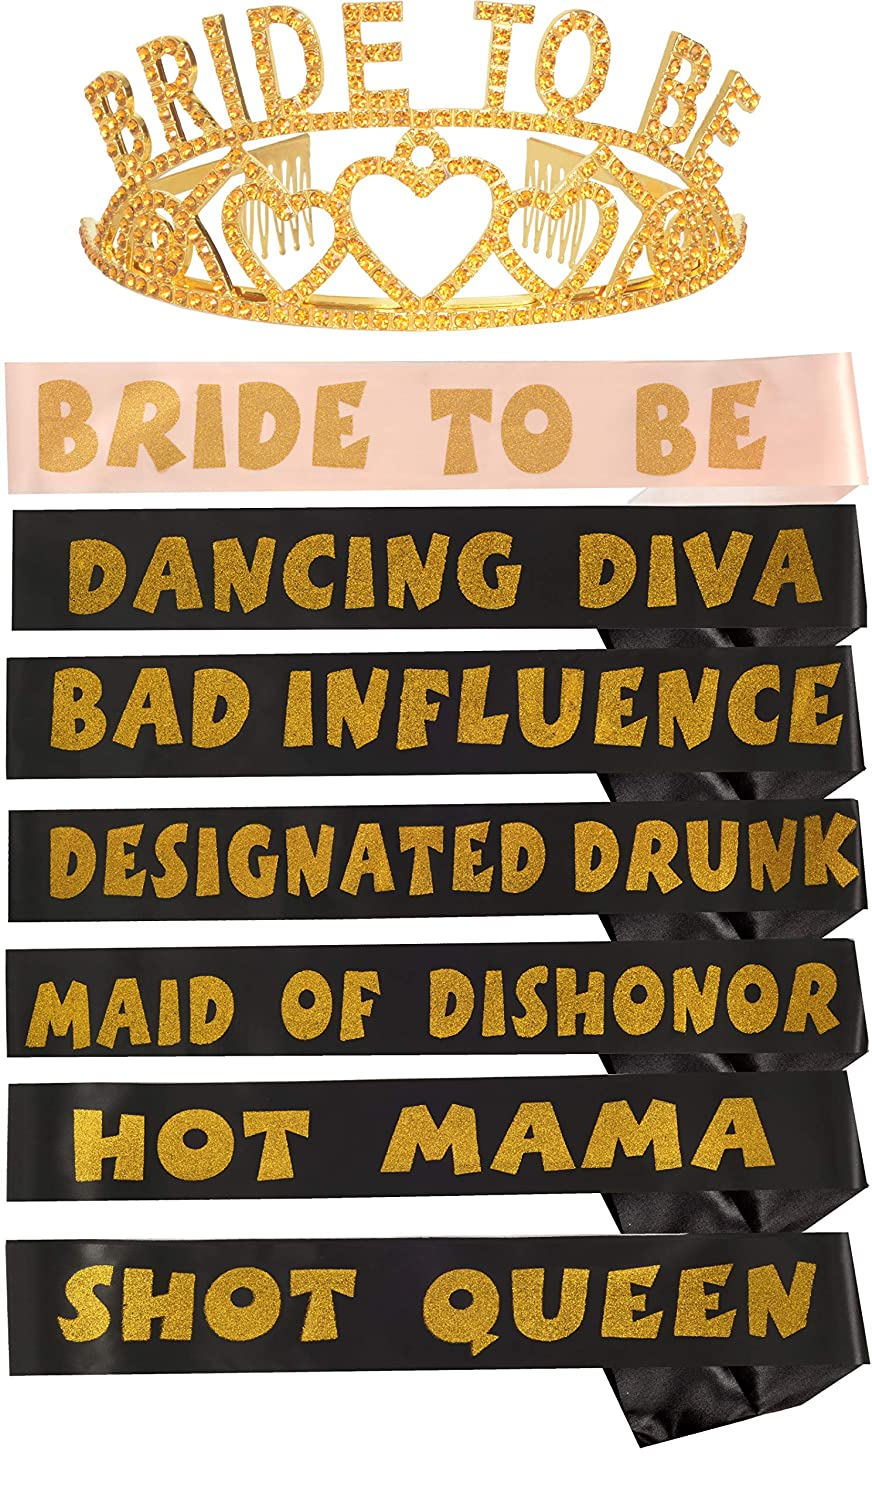 Bride to Be Sash Bachelorette Sashes Set for Bridesmaid 6 Bride Tribe Sashes With Fun Phrases Imprinted Wedding Party Hen Party Meant2ToBe Elegant Gold Rhinestone Tiara//Crown 7 Bachelorette Gold Sashes